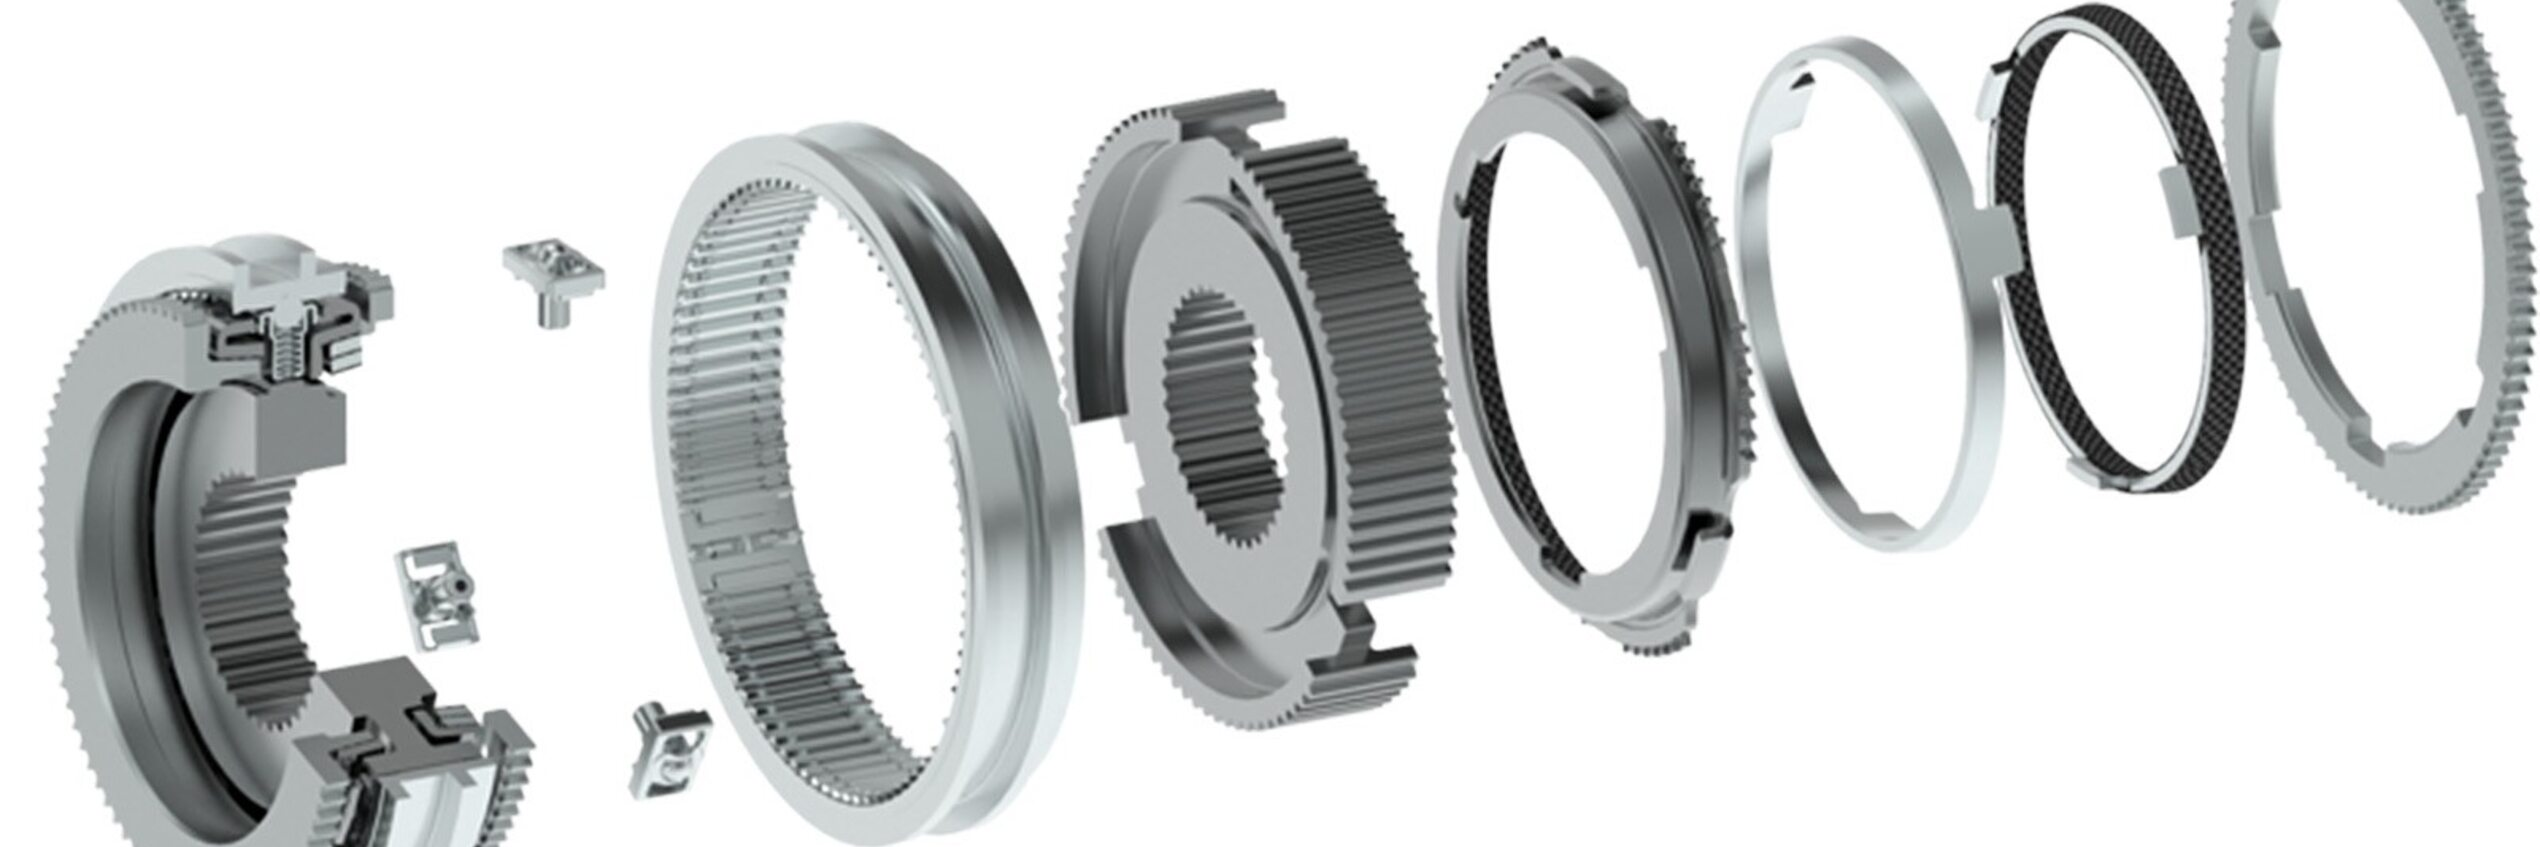 Synchronization systems by Schaeffler and Diehl. The Short System fully utilizes the potential offered by matched components and technologies for reducing the design space without sacrificing performance.